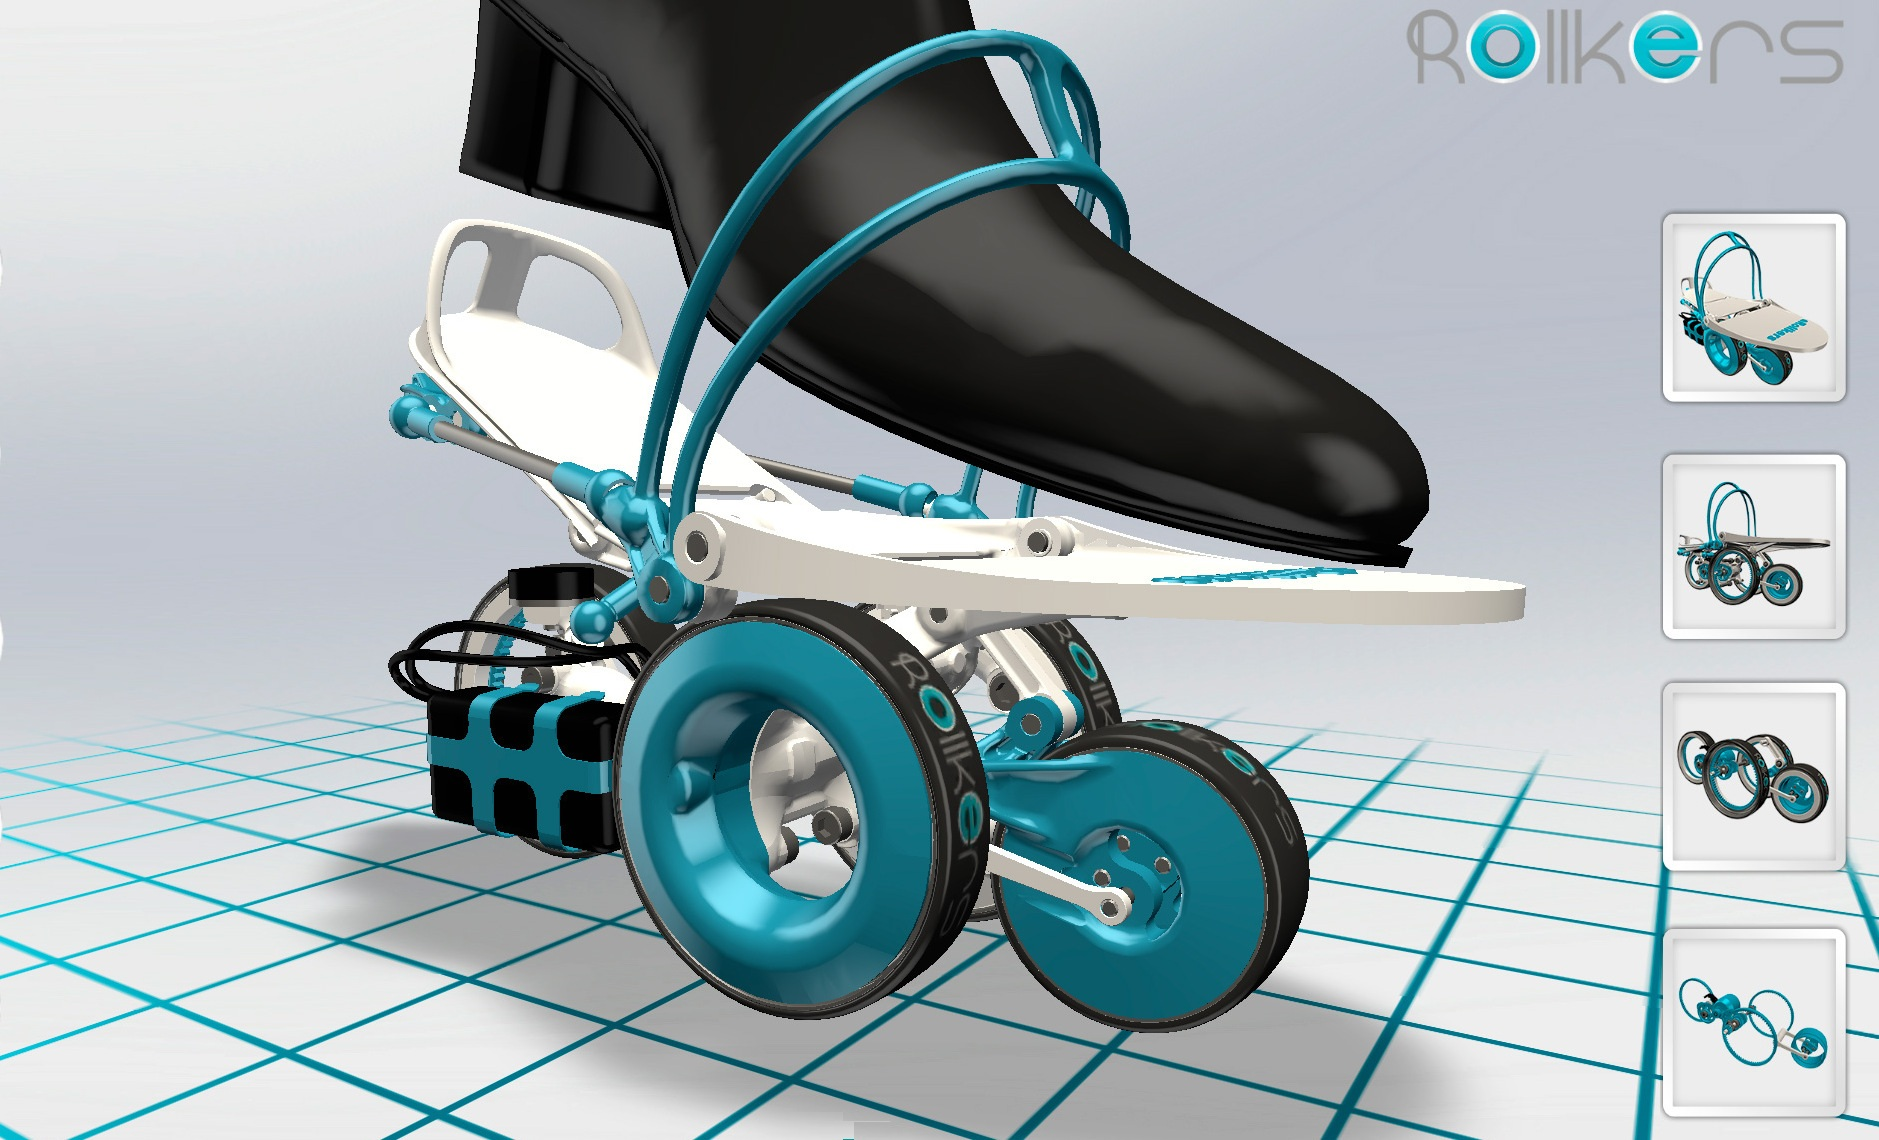 Roller skating shoes in chennai - Rollkers Were Developed To Combat These Issues And Provide A Healthier More Environmentally Friendly And Increasingly Reliable Form Of Transportation